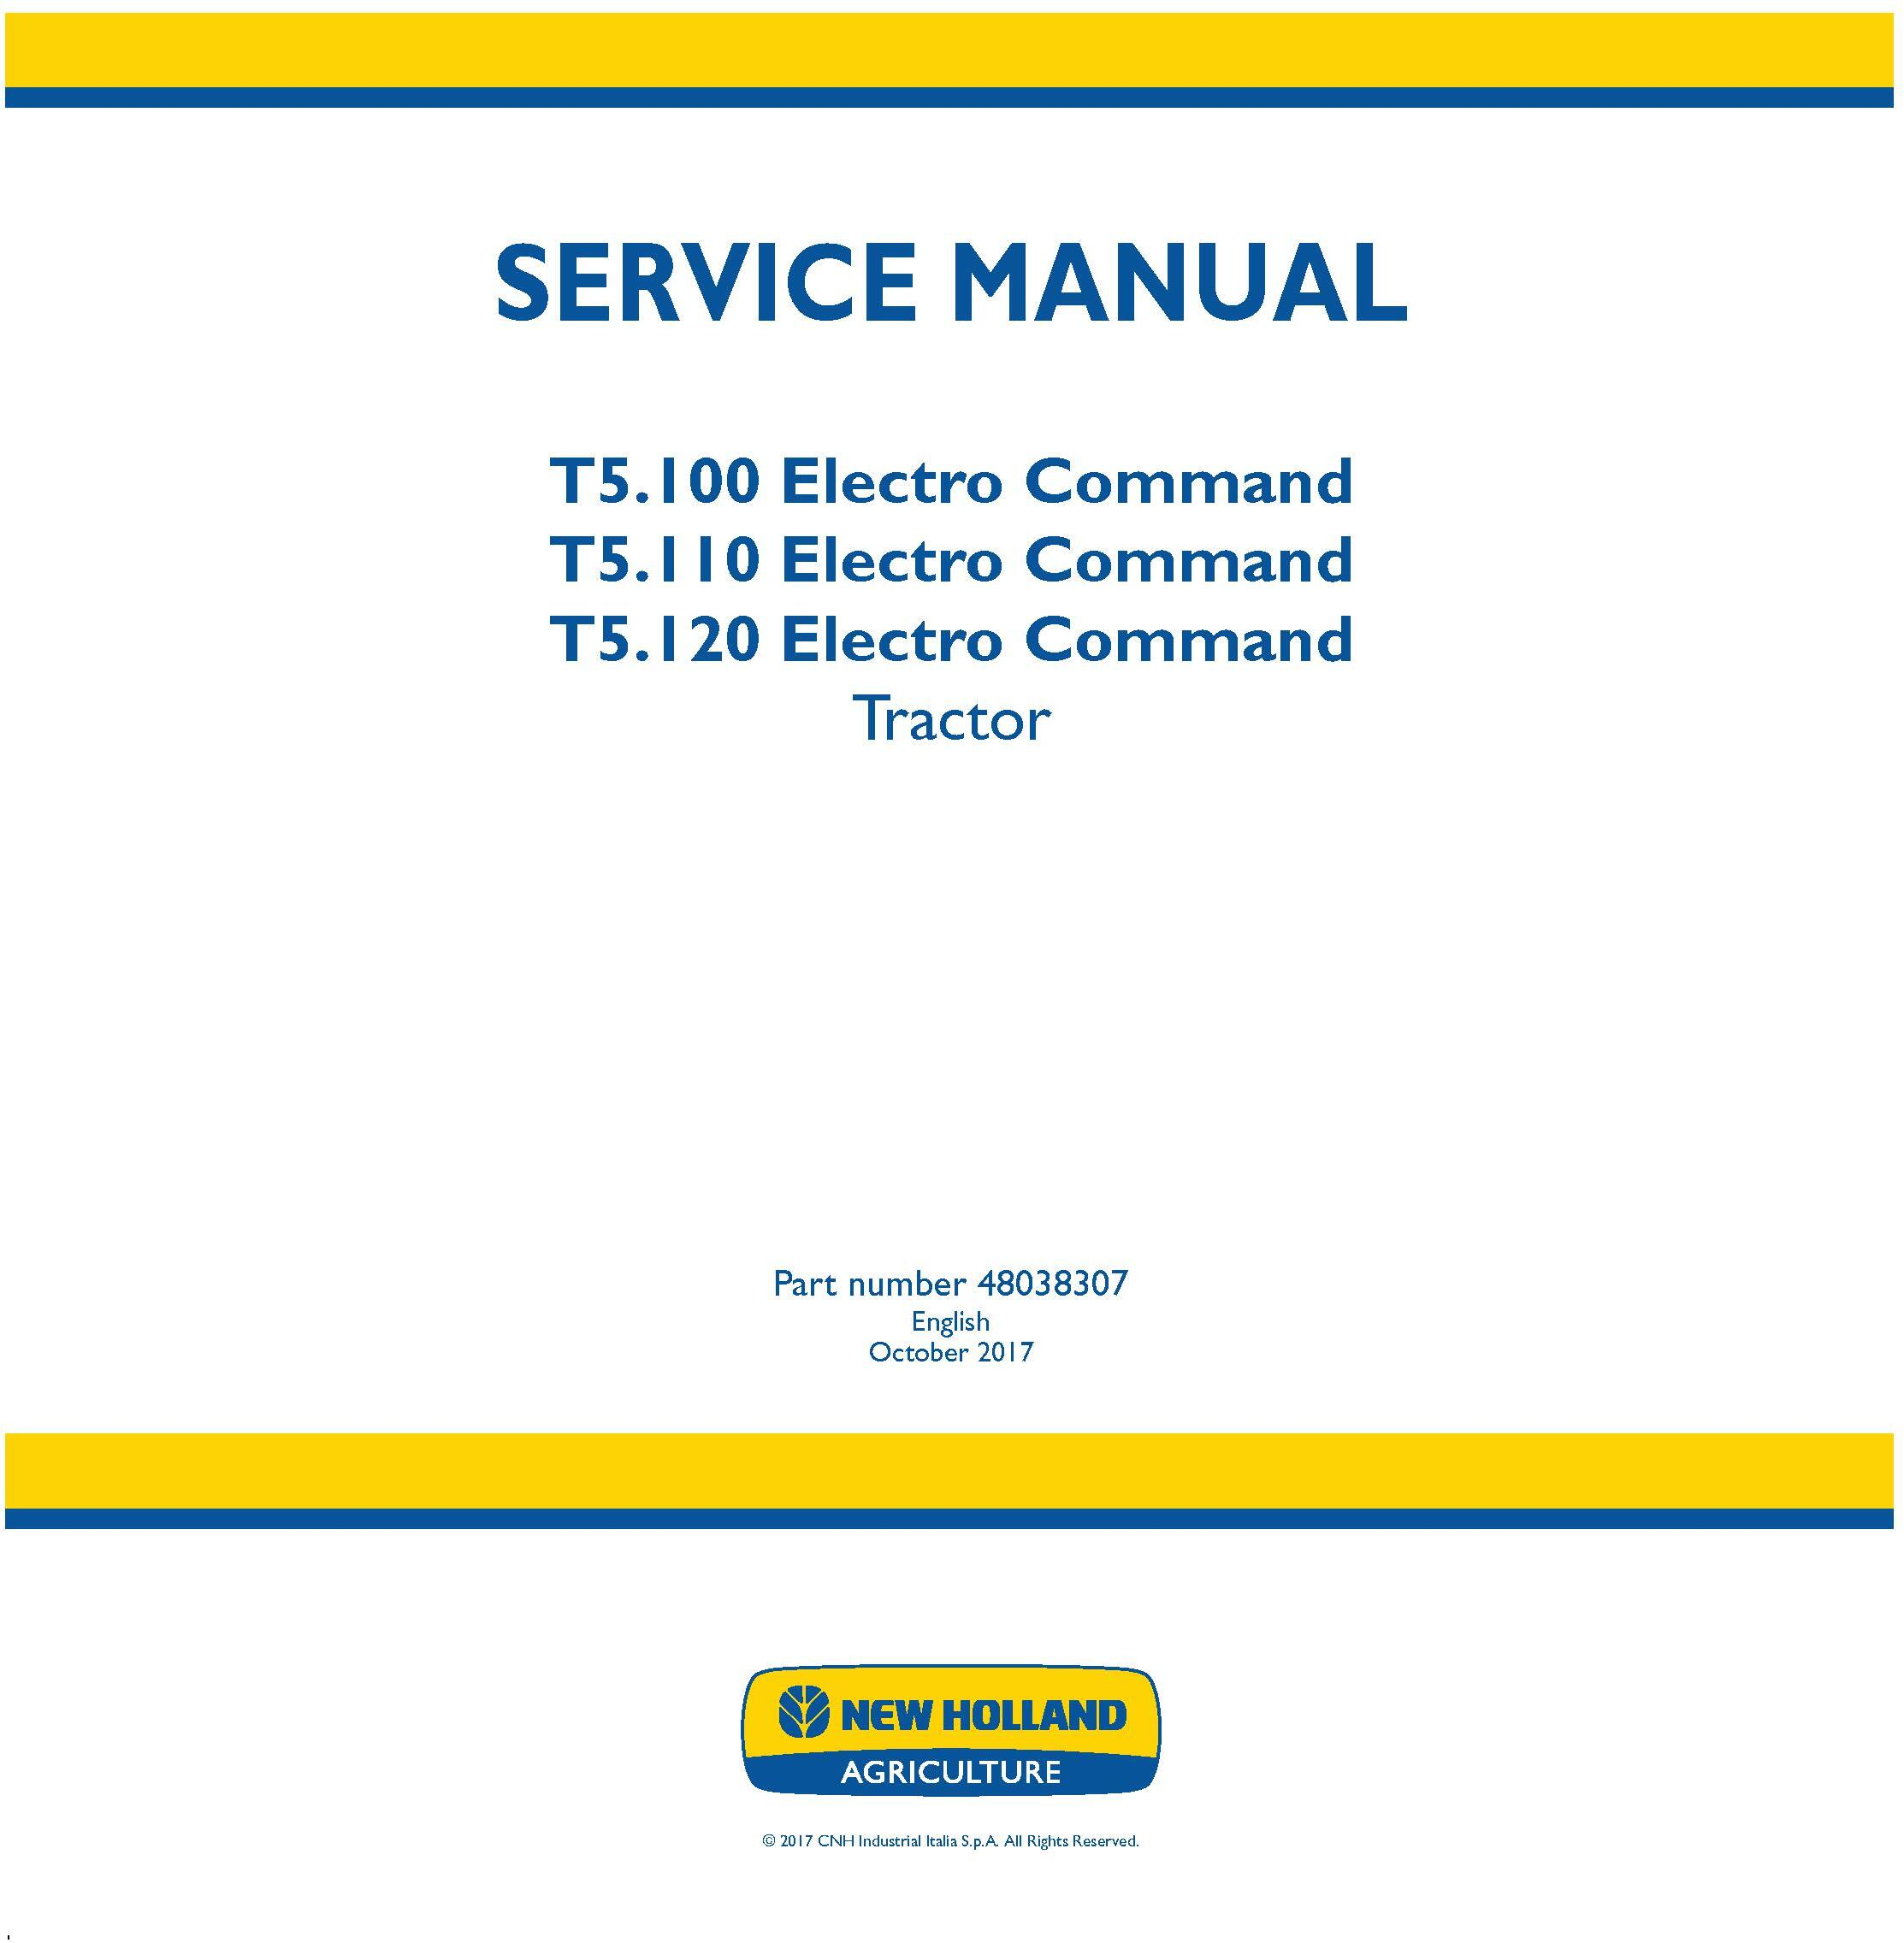 New Holland T5.100, T5.110, T5.120 Electro Command Stage IV Tractor Service Manual - 19486